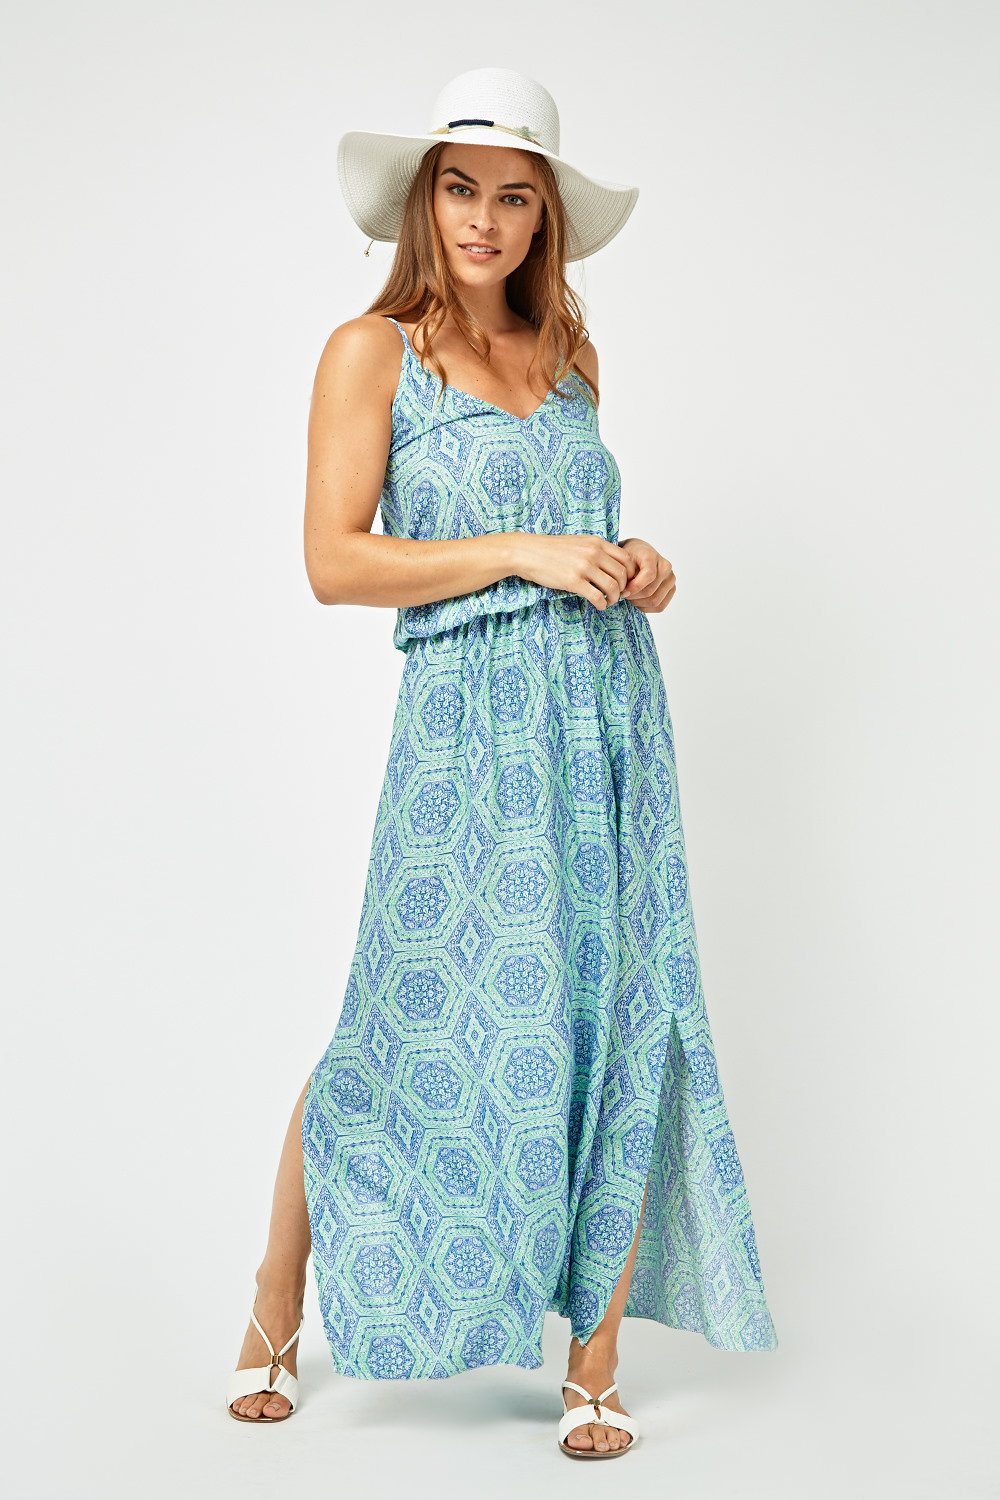 814bffb609d Moroccan Tile Print Maxi Dress - Just £5